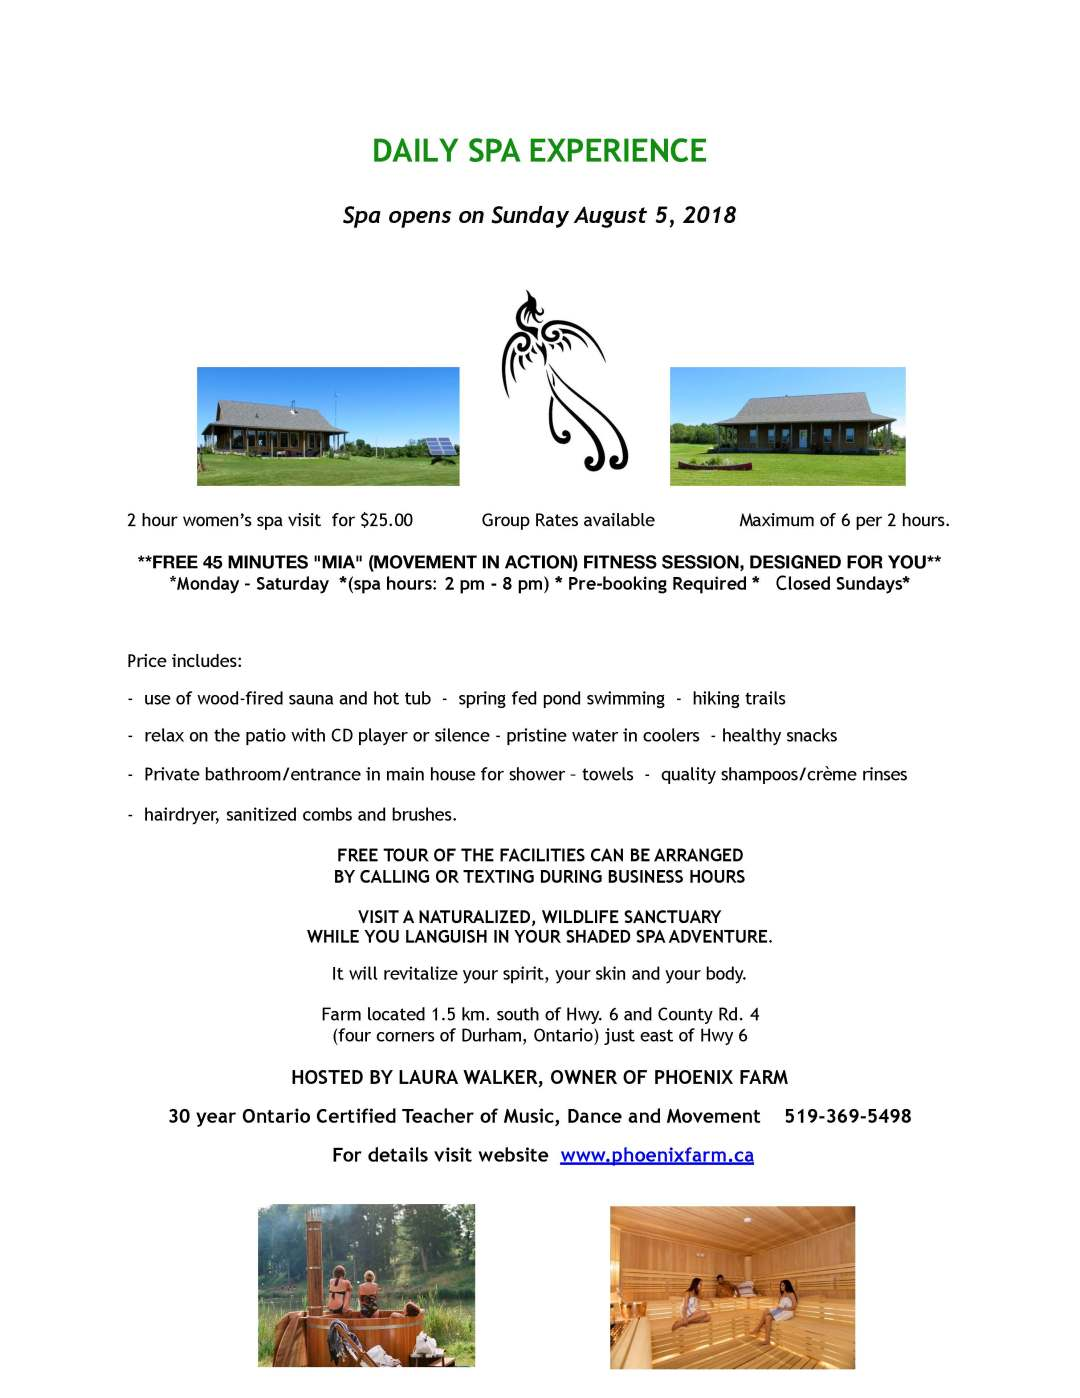 Daily_Spa_Experience_2018_Phoenix_Farm_Page_1_Page_1_Page_1